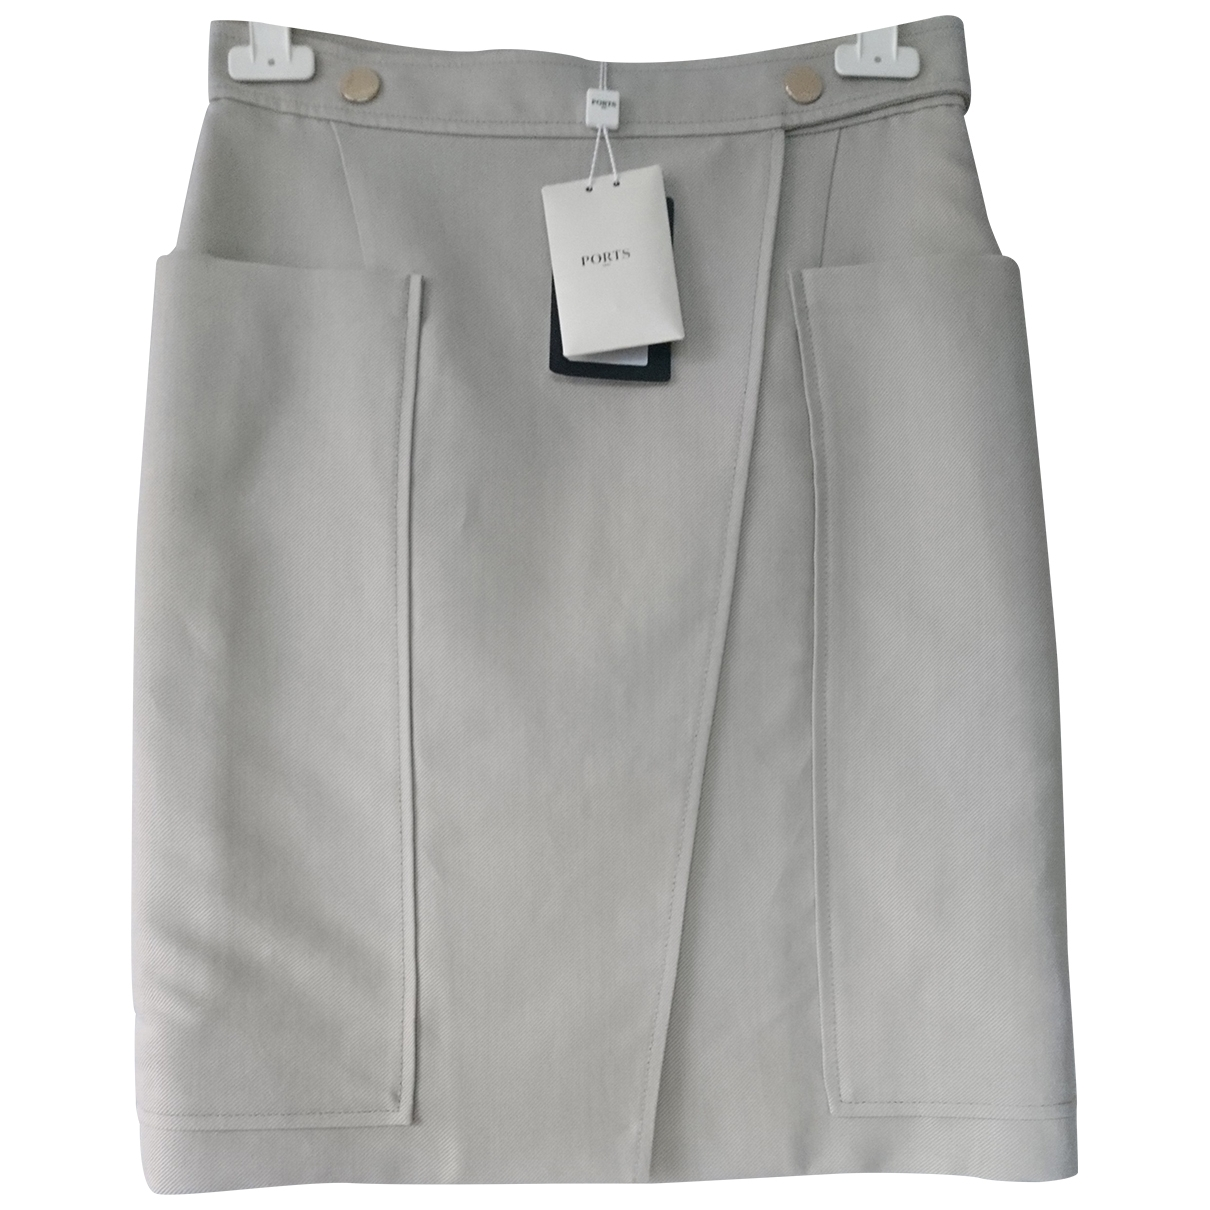 Ports 1961 \N Grey Cotton skirt for Women 42 IT